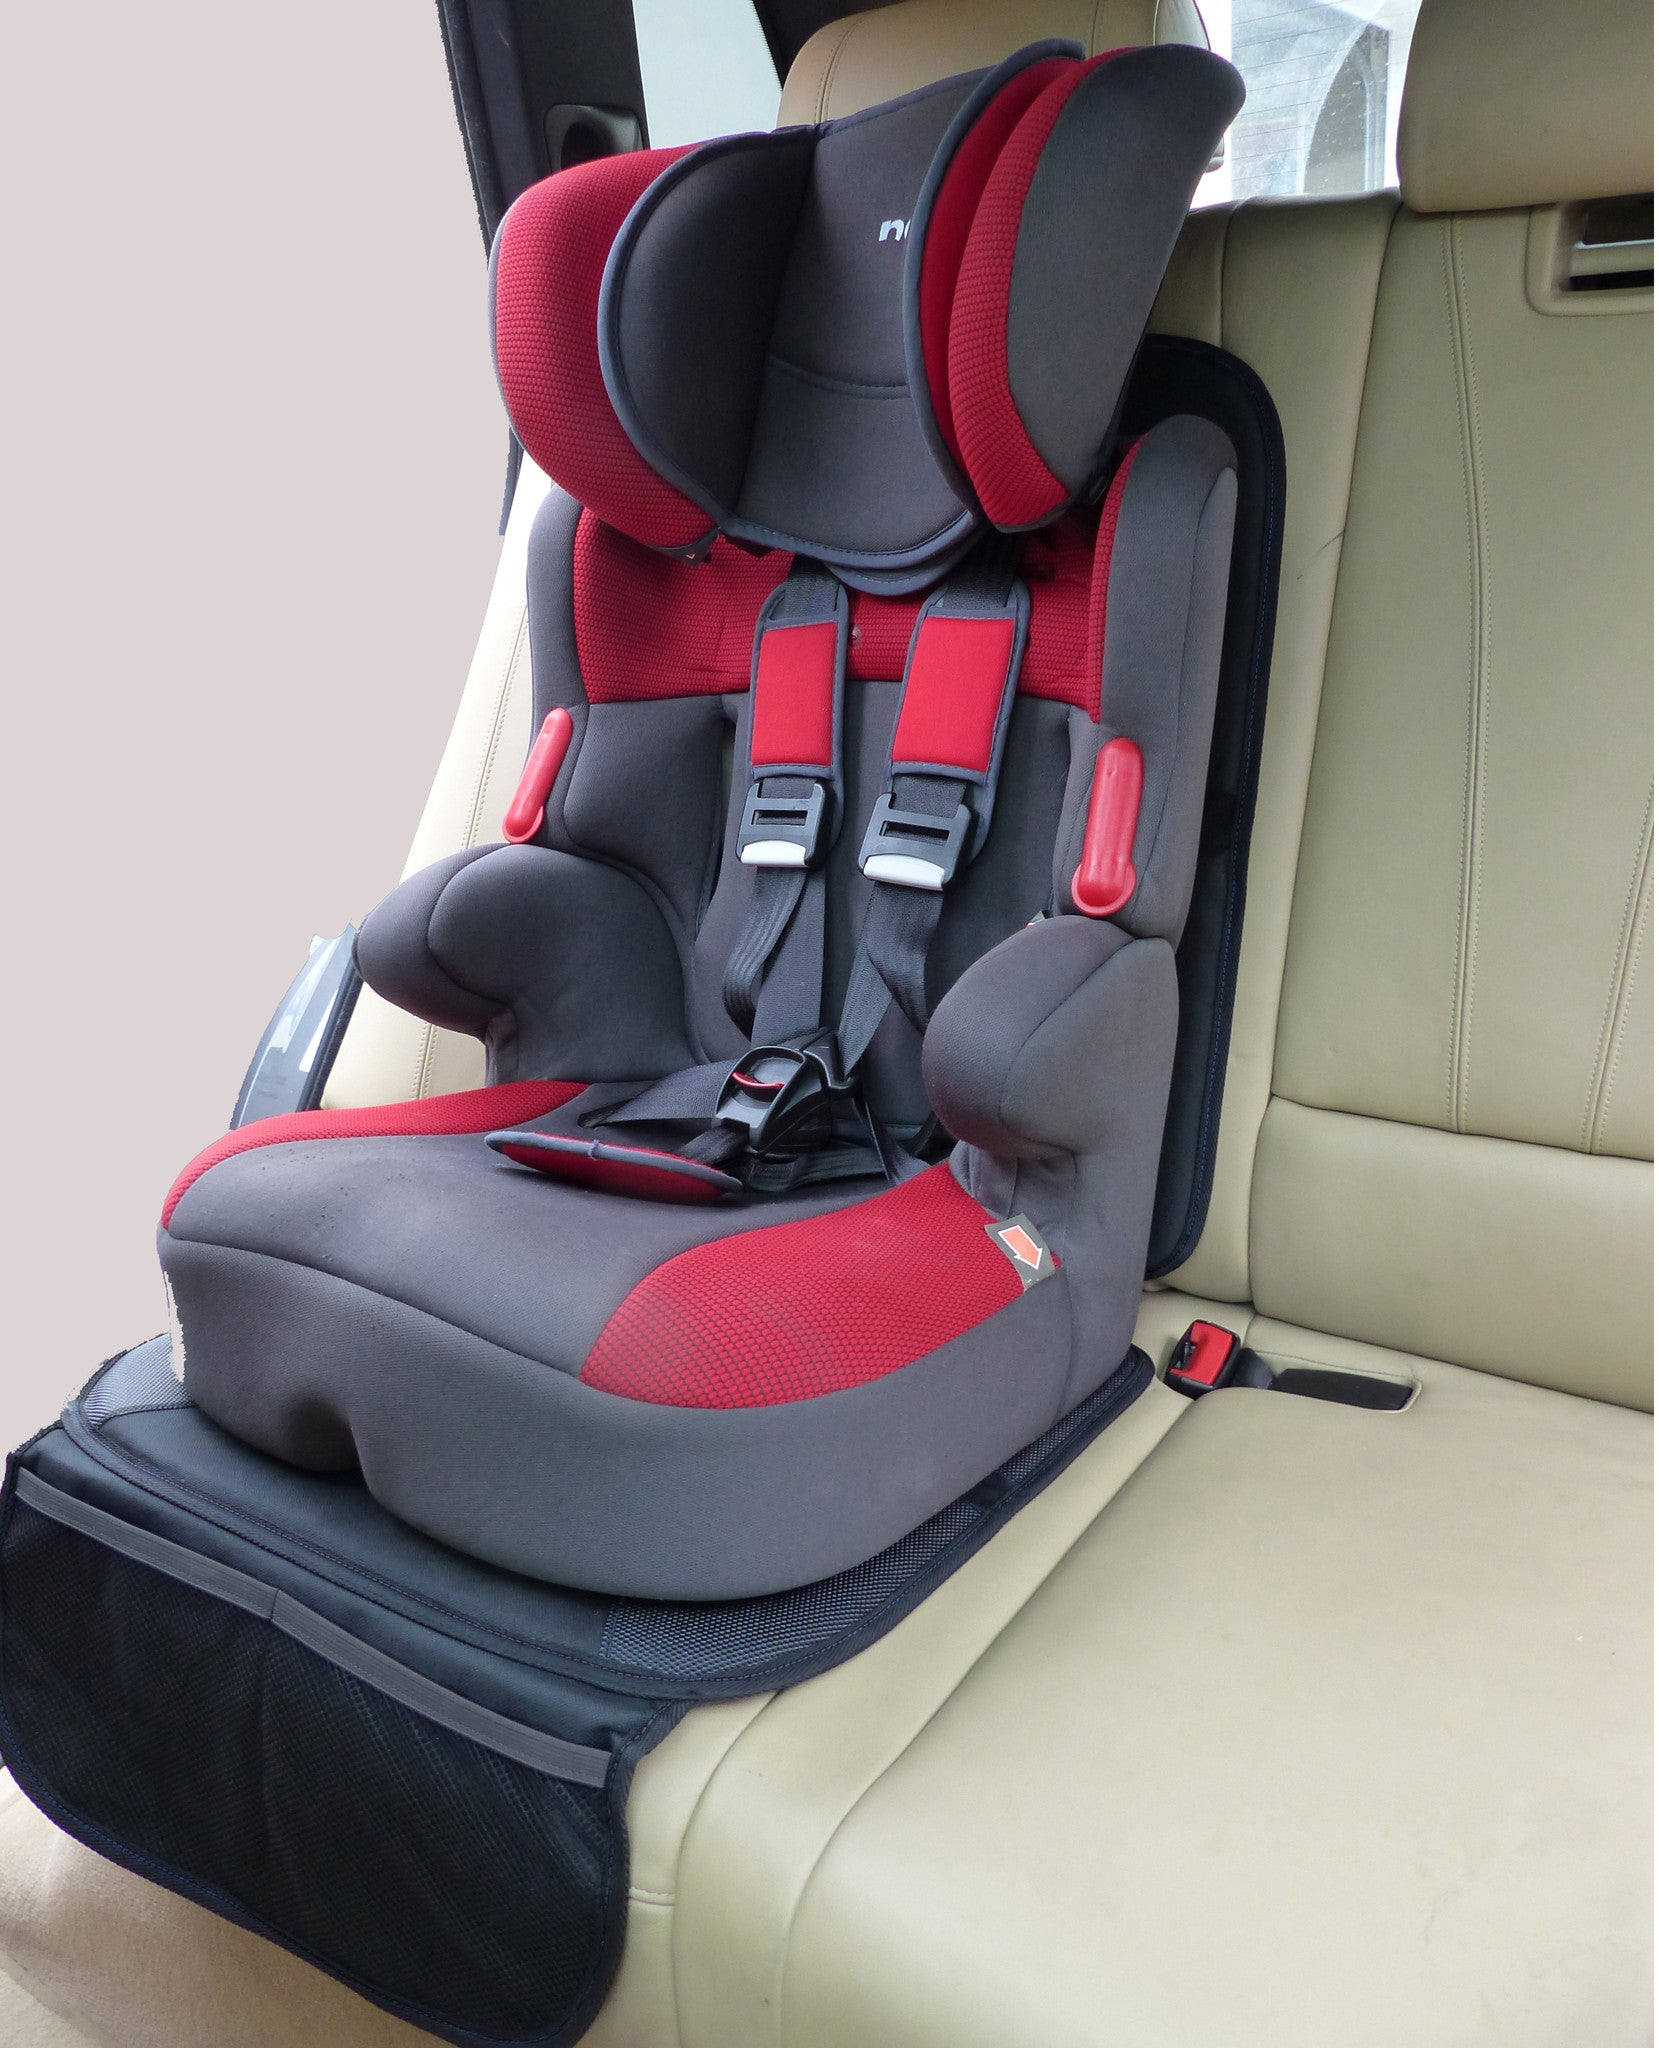 Child Car Seat Protector | Just Pure Hut